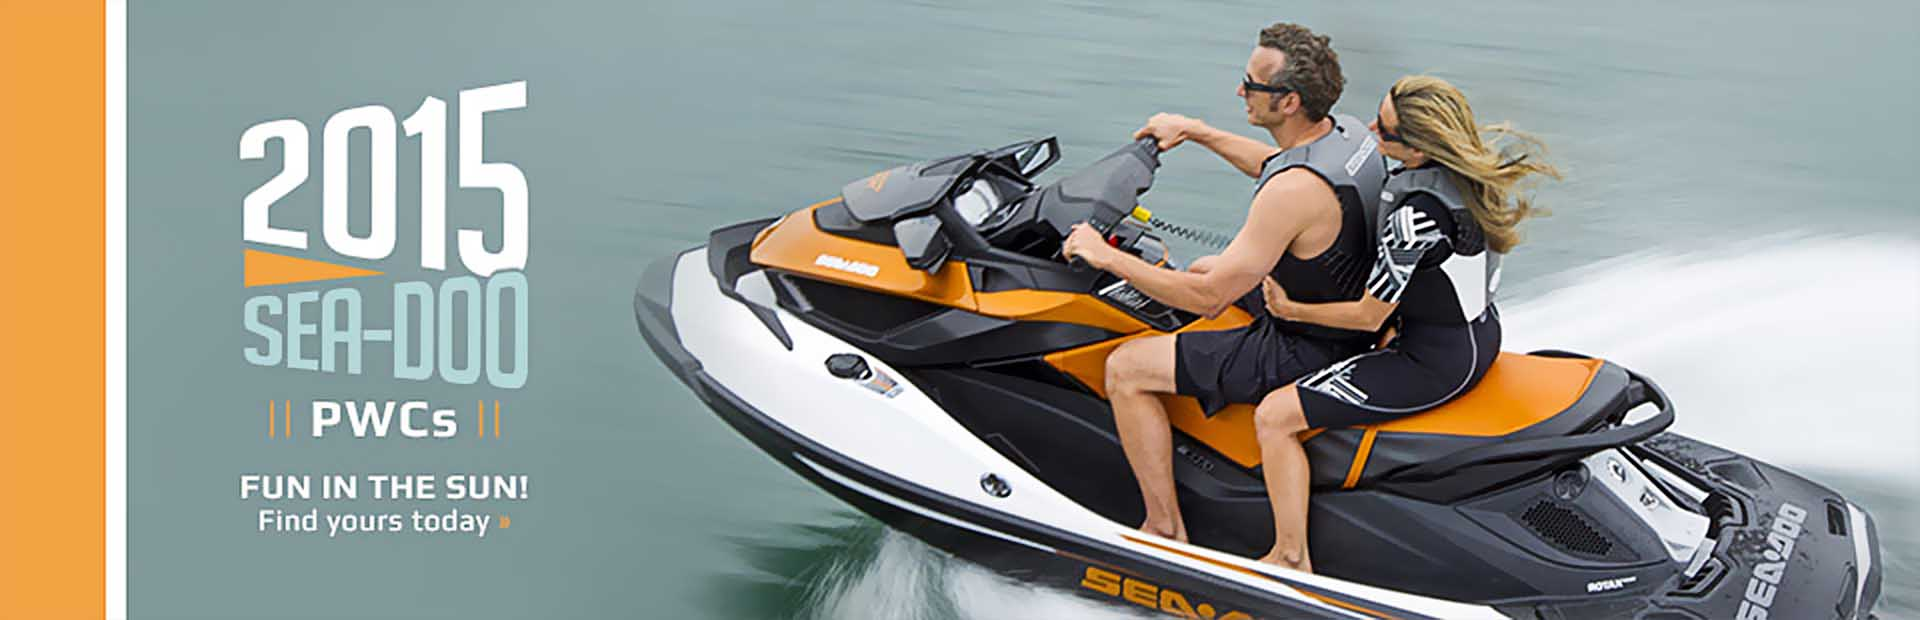 2015 Sea-Doo PWCs: Click here to view the models.